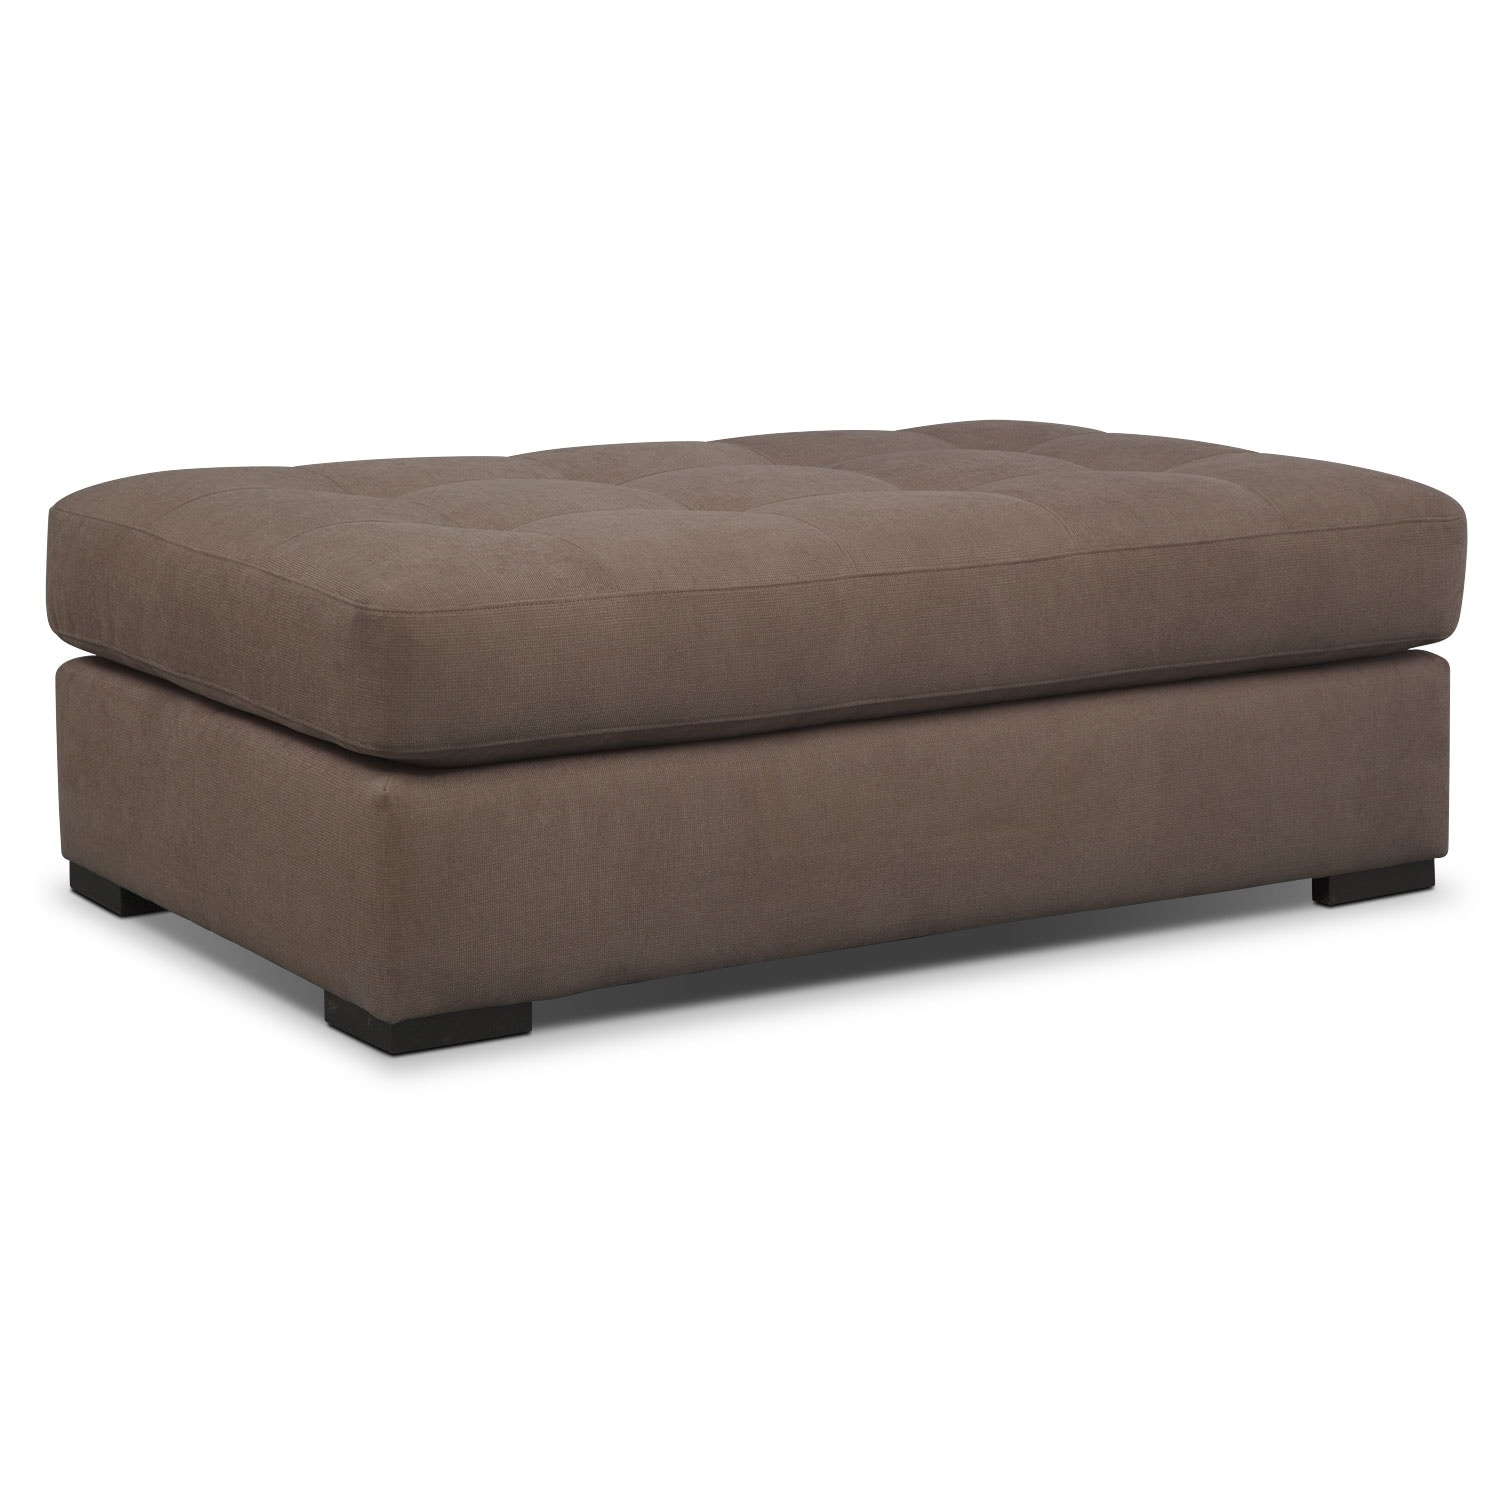 Living Room Furniture - Venti Cocktail Ottoman - Mocha